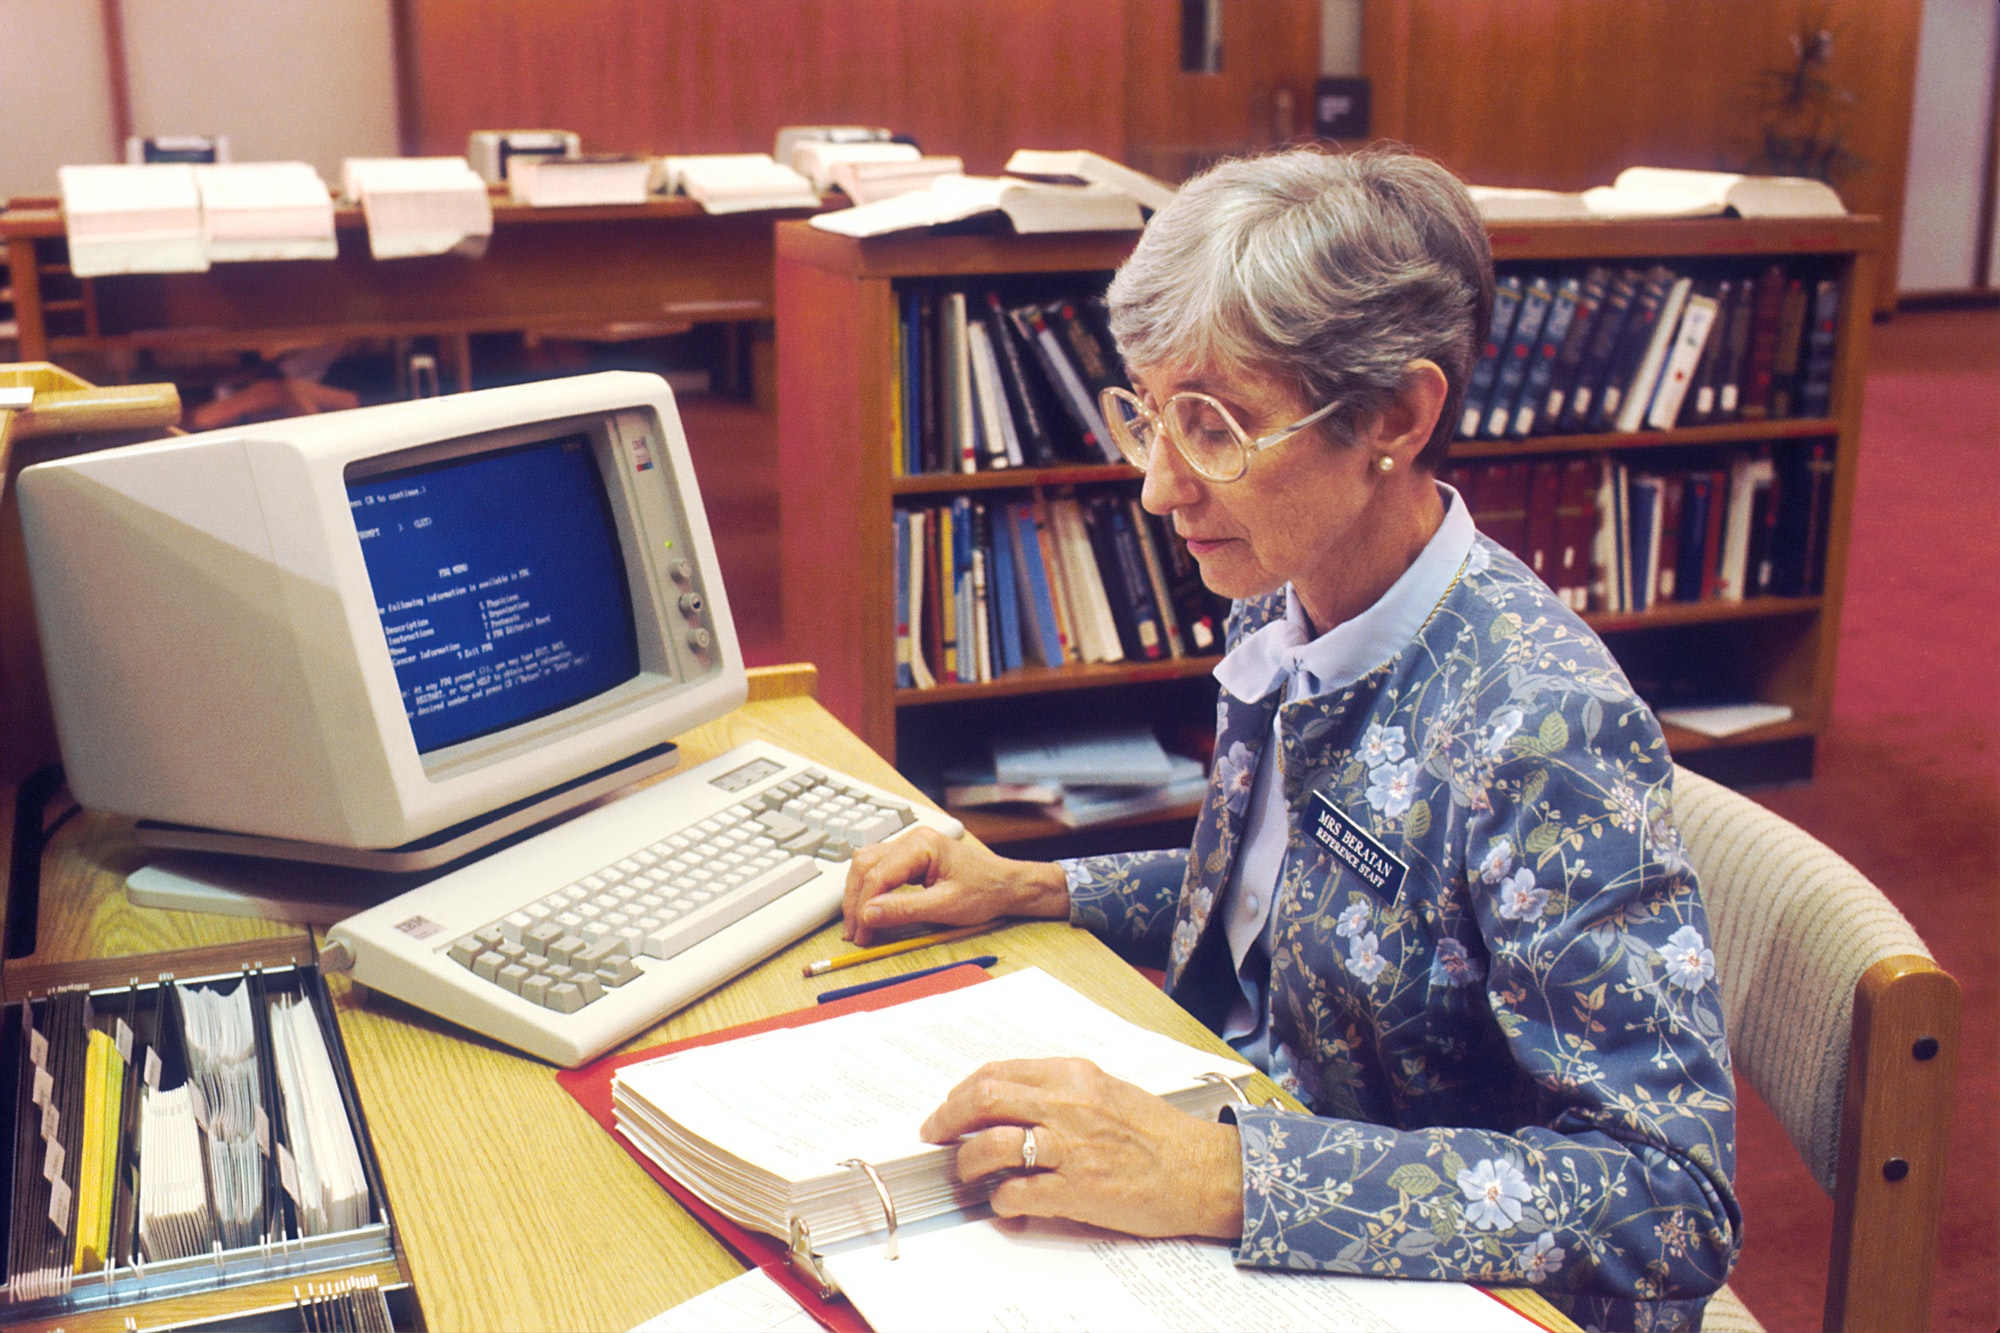 A woman at the National Cancer Institute sitting at a desk with a binder in front of an IBM computer